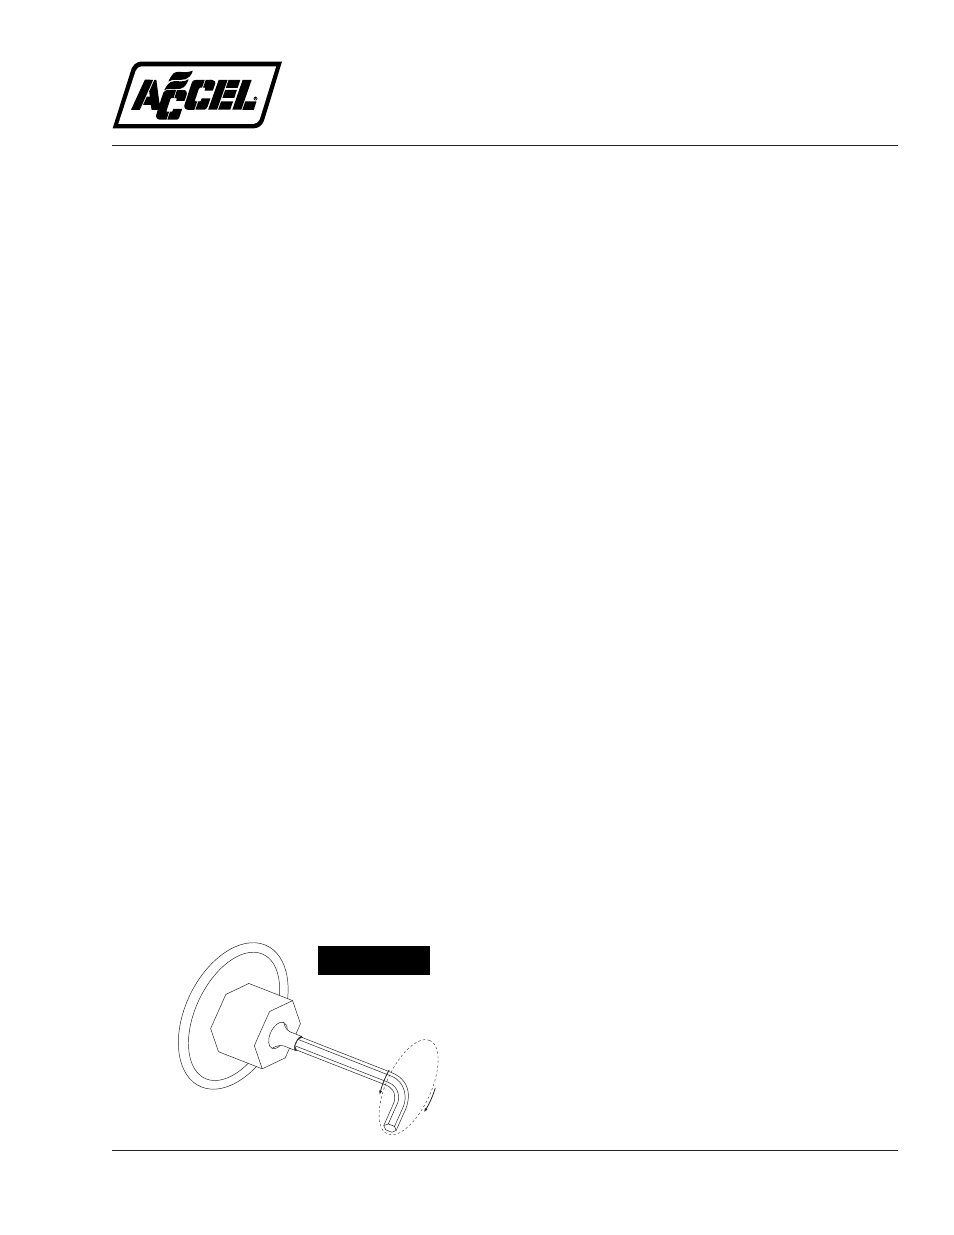 Mallory Magnetic Breakerless Distributor Wiring Diagram Schematic 5048201 Accel House Fuel Pump Ignition